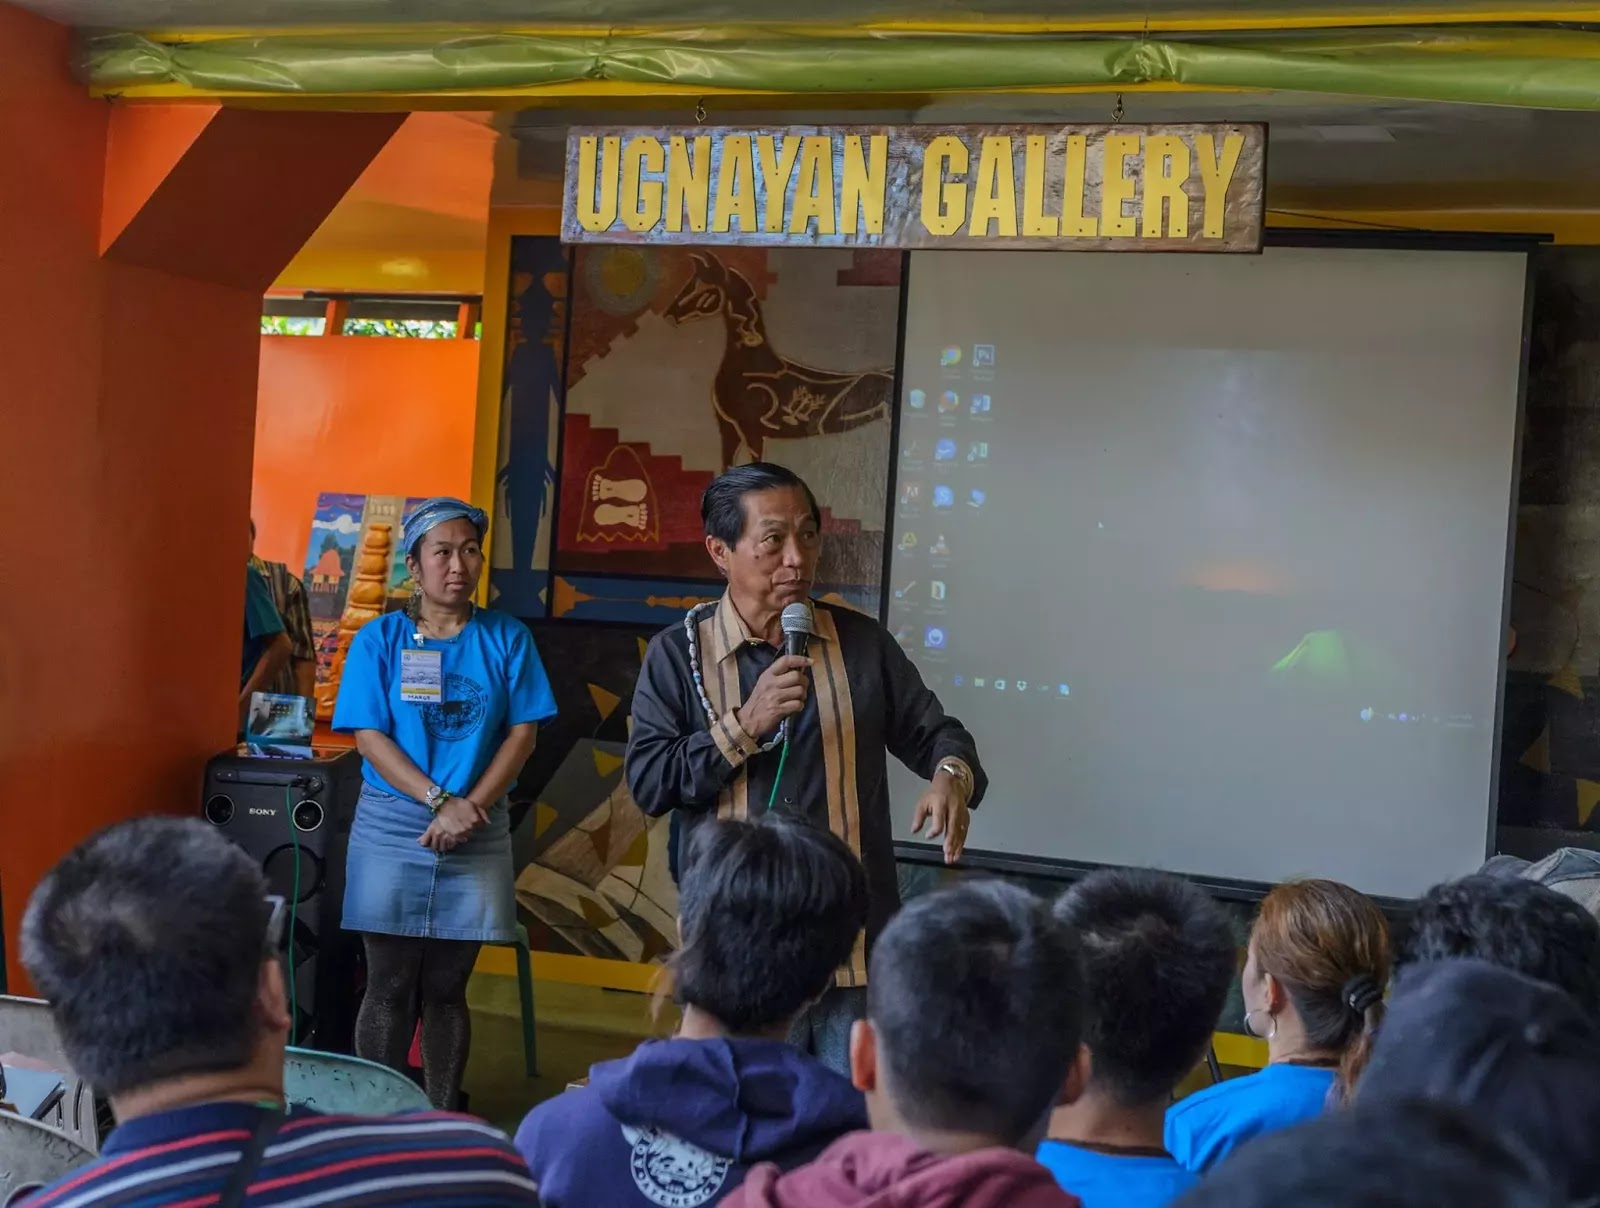 International Arts Festival 8th Tam-awan Baguio City Philippines Keeping the Stones Rolling Opening Ceremonies Honorable Baguio City Mayor Mauricio G. Domogan Addressing Festival Participants Guests Artisits Media Another POV